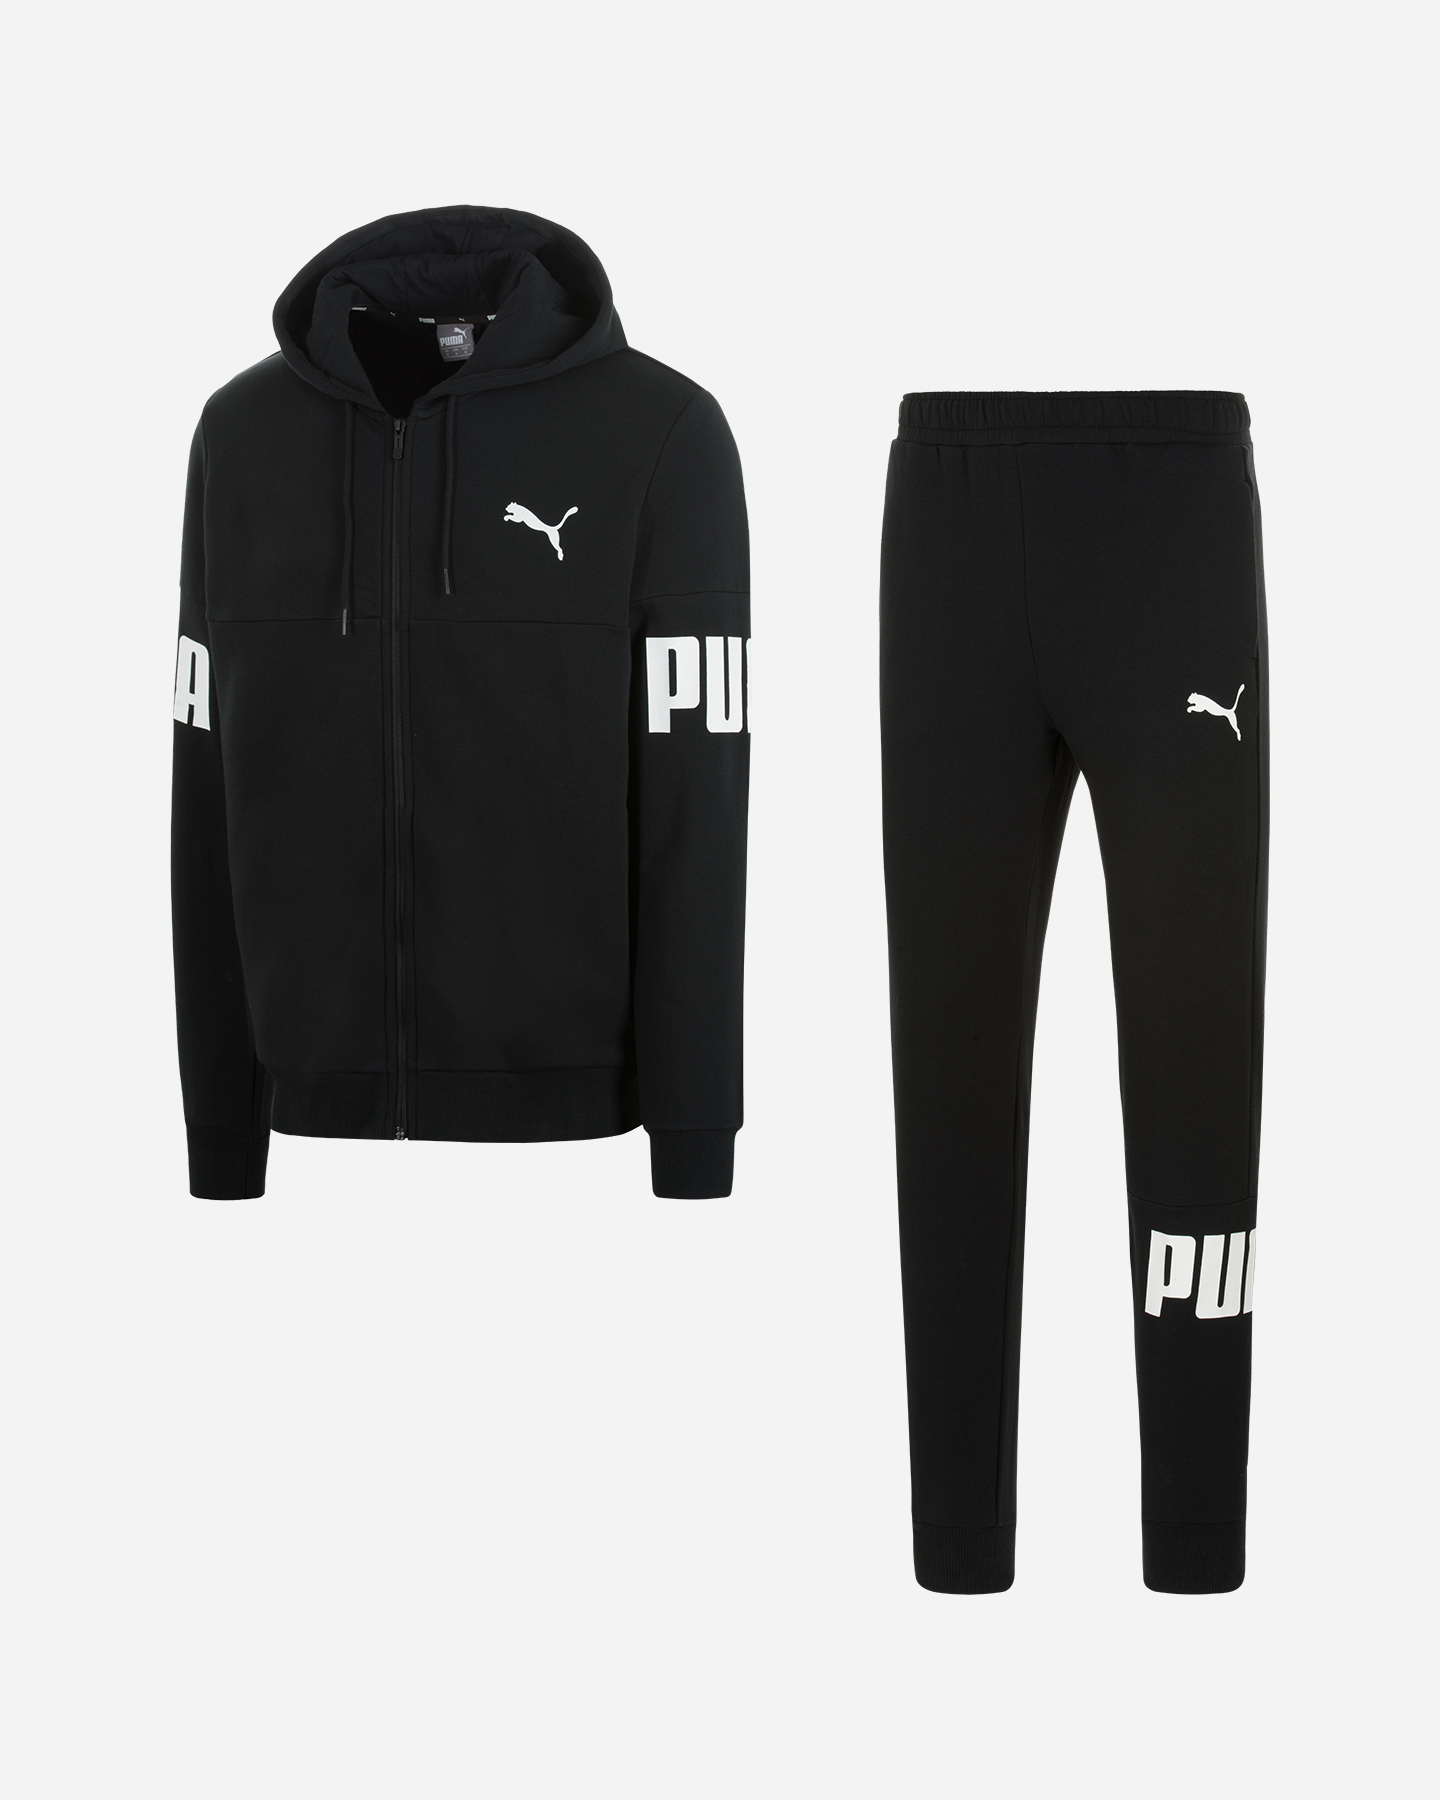 1494f8d6b790ca Tuta Puma Hooded Sweat Suit M 85507301 | Cisalfa Sport